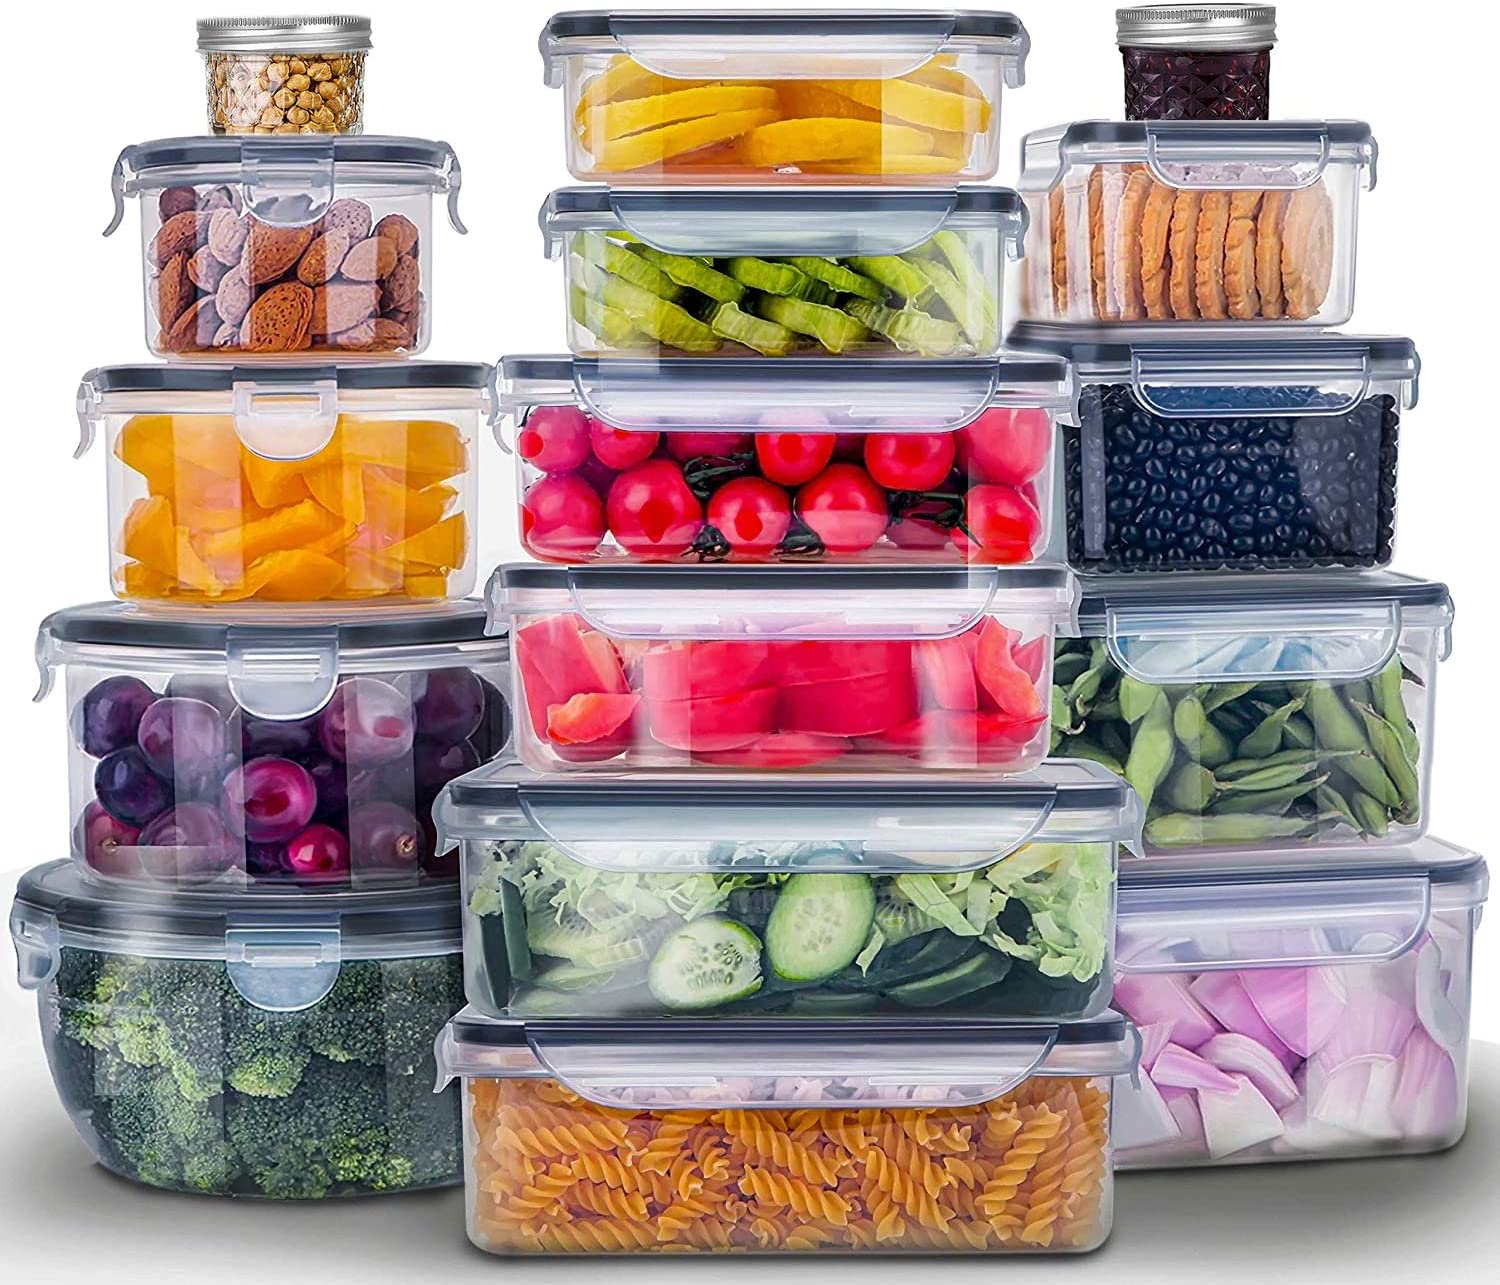 32 Pieces Food Storage Containers With Lids(Plastic Containers + Mason Jars) BPA-Free & Leak Proof Food Container Set Plastic Meal Prep Containers Airtight Glass Lunch Boxes With 2 Pack Canning jars